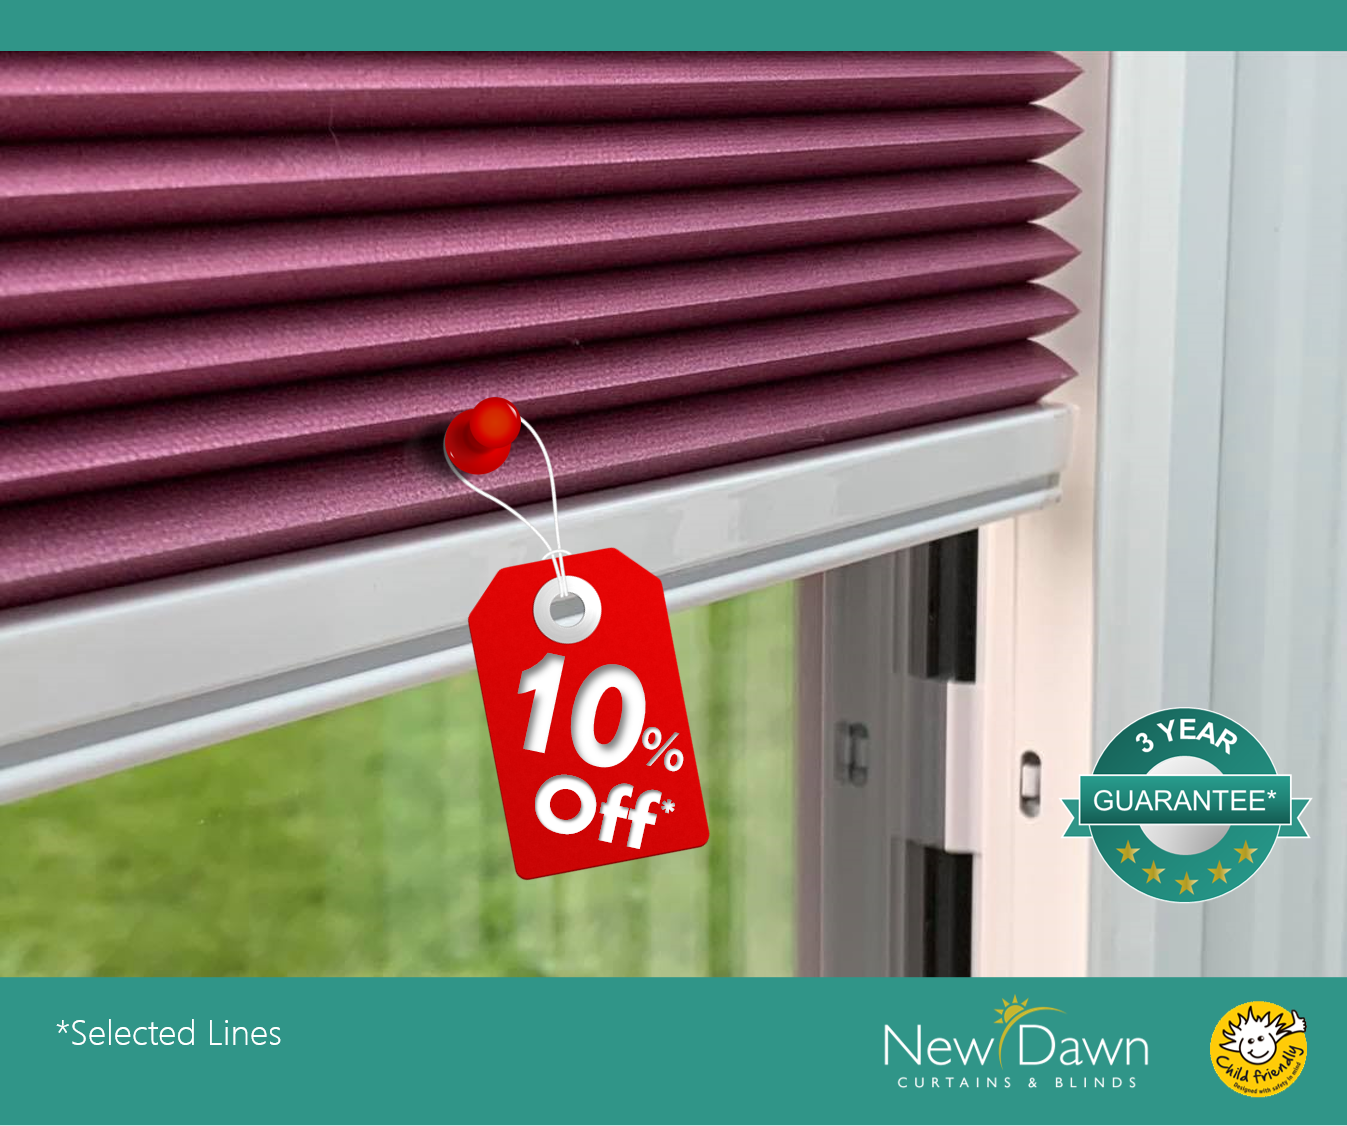 no drill pleated blinds 10% off